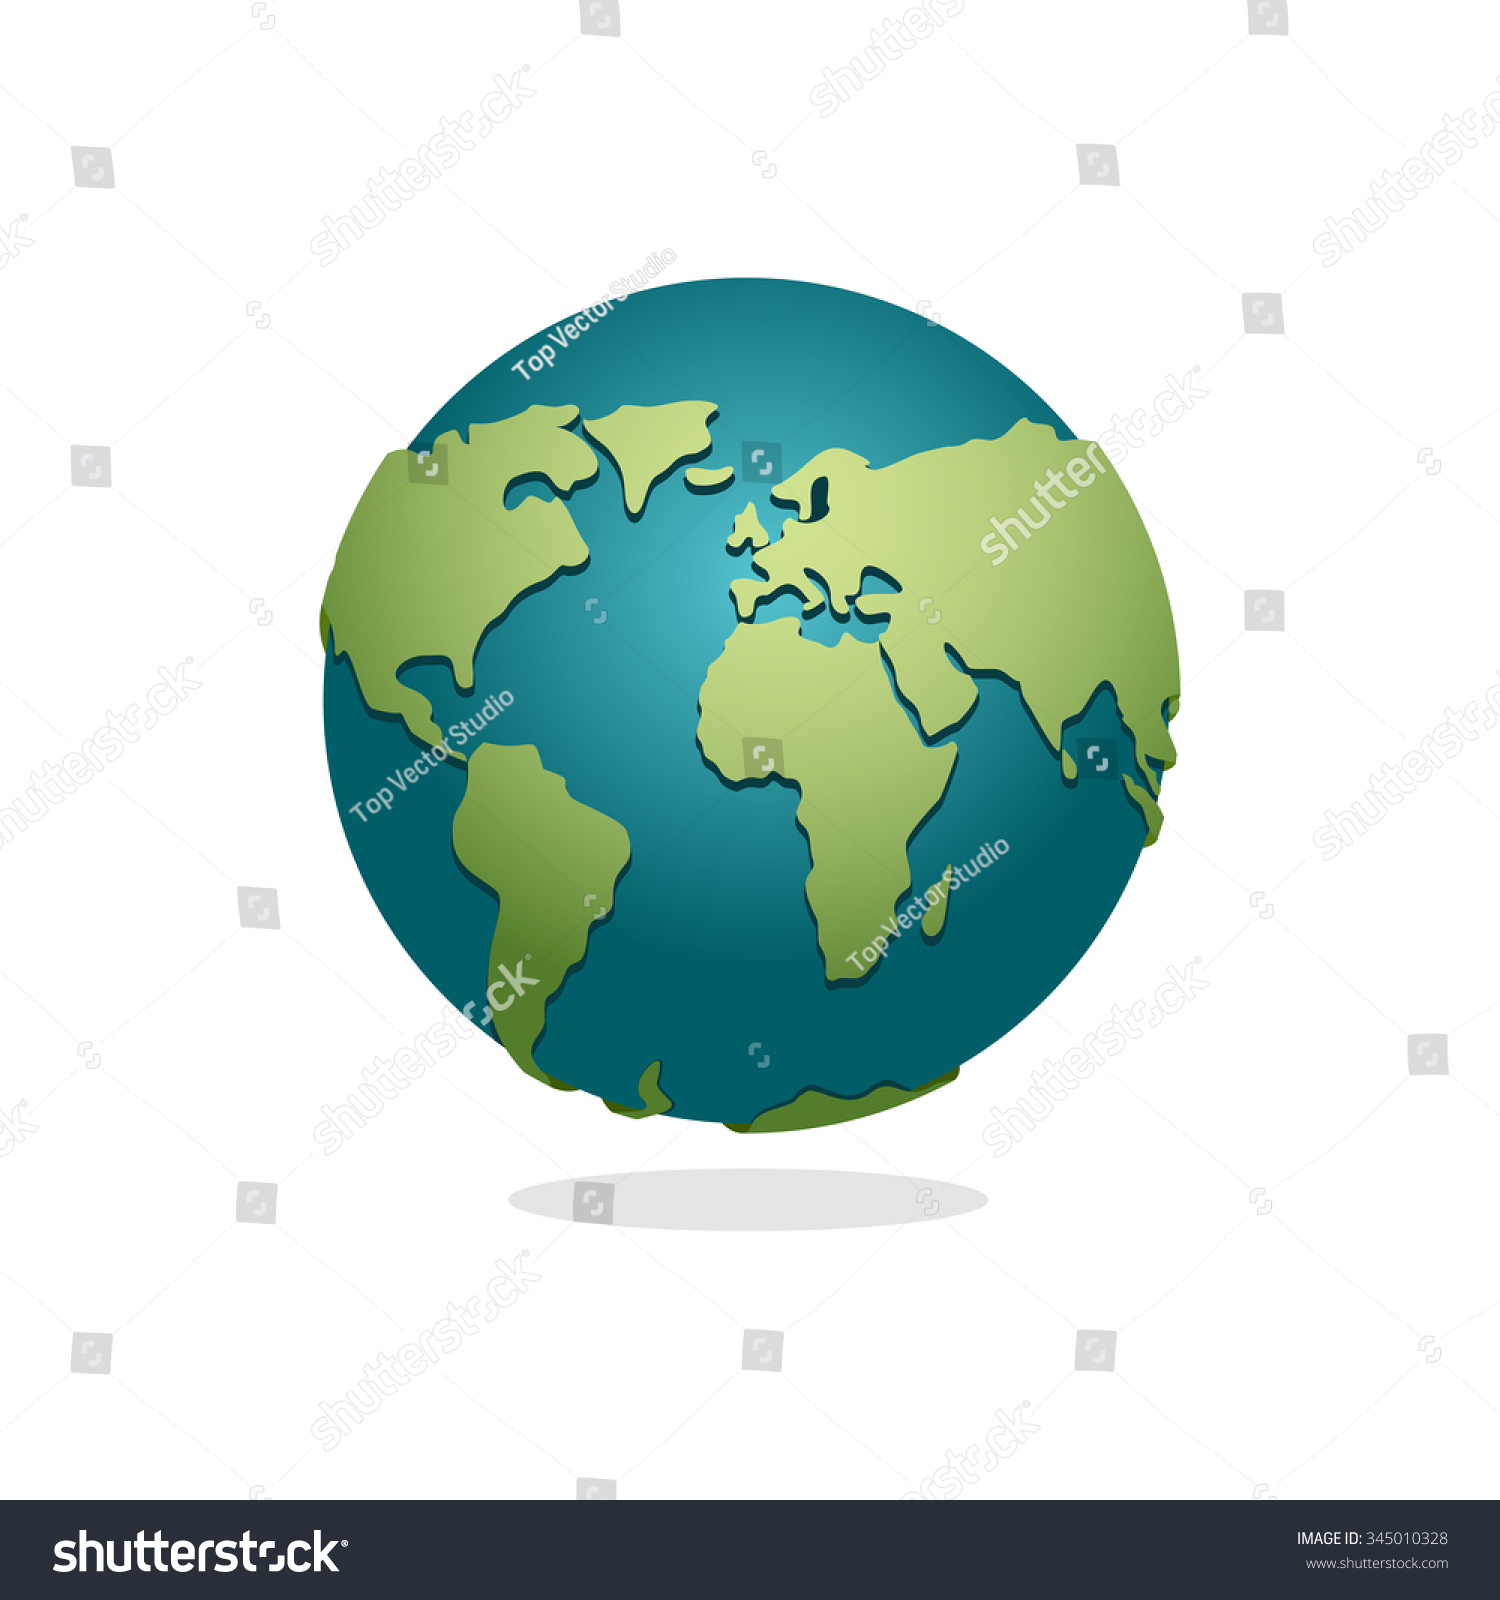 Earth Planet Sign Globe Space Earth Stock Vector